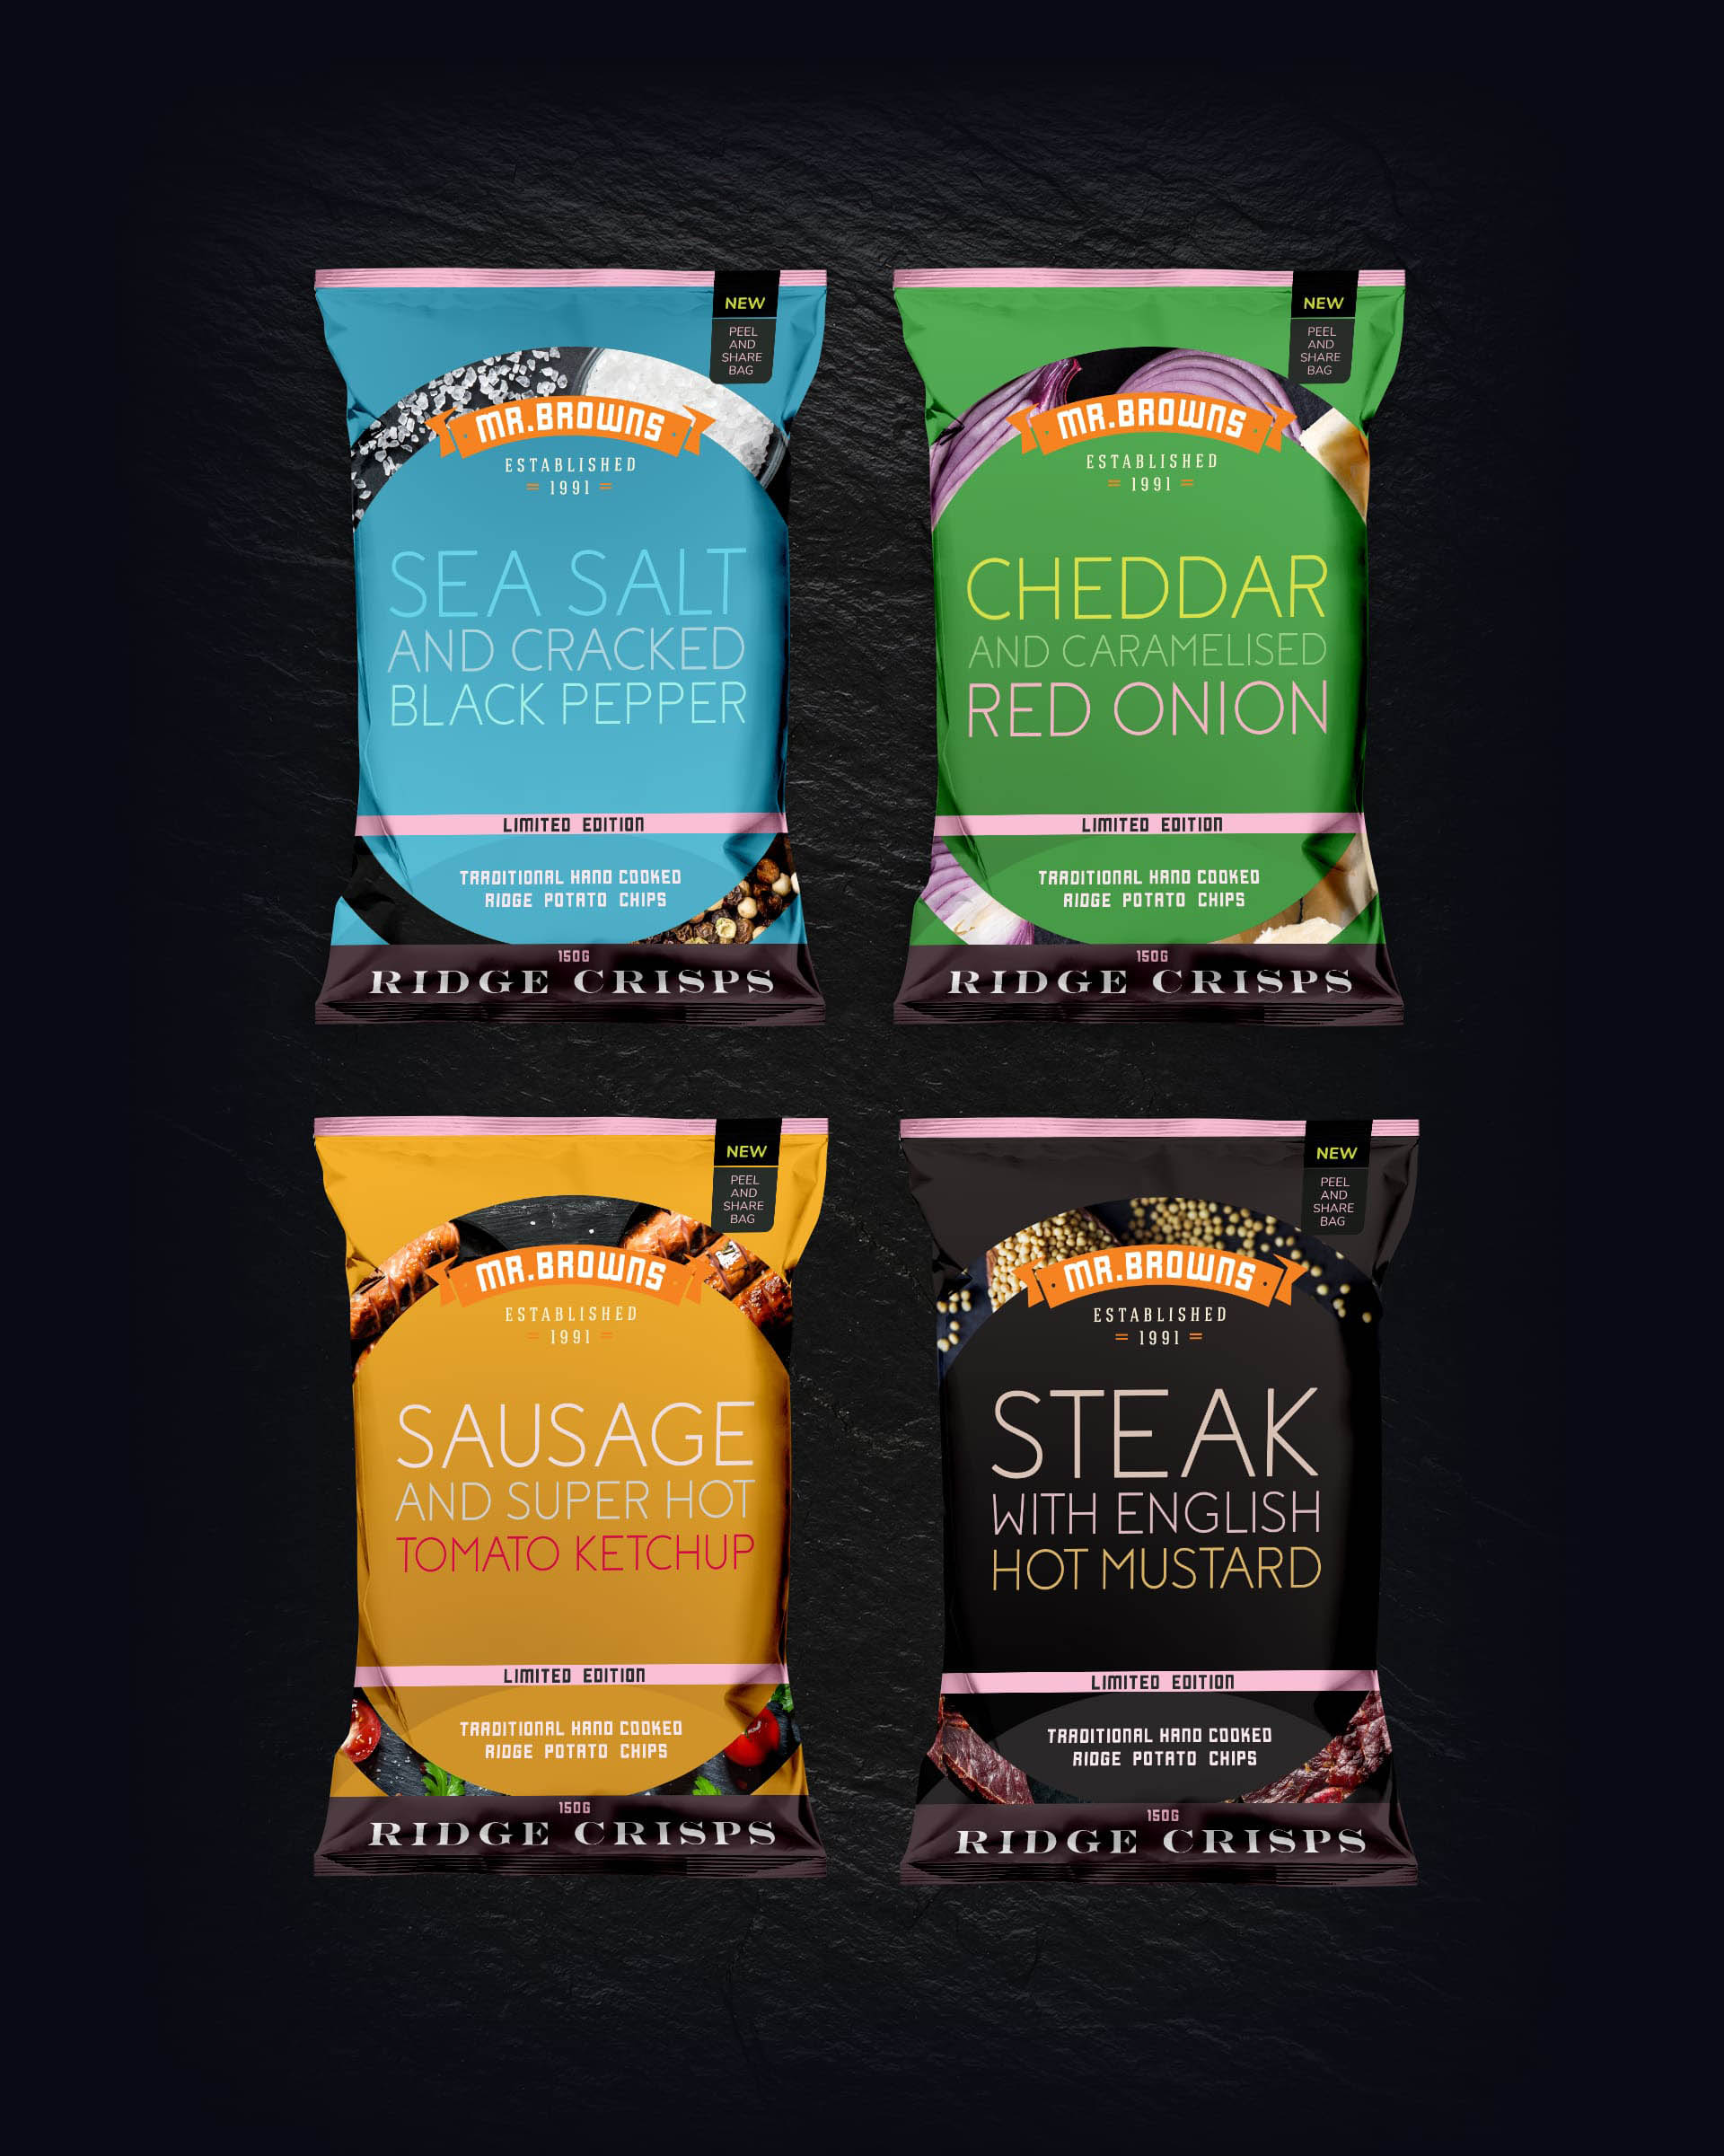 packaging design company and graphic design for packaging by Polkadot Agency, Yeovil, Somerset, UK